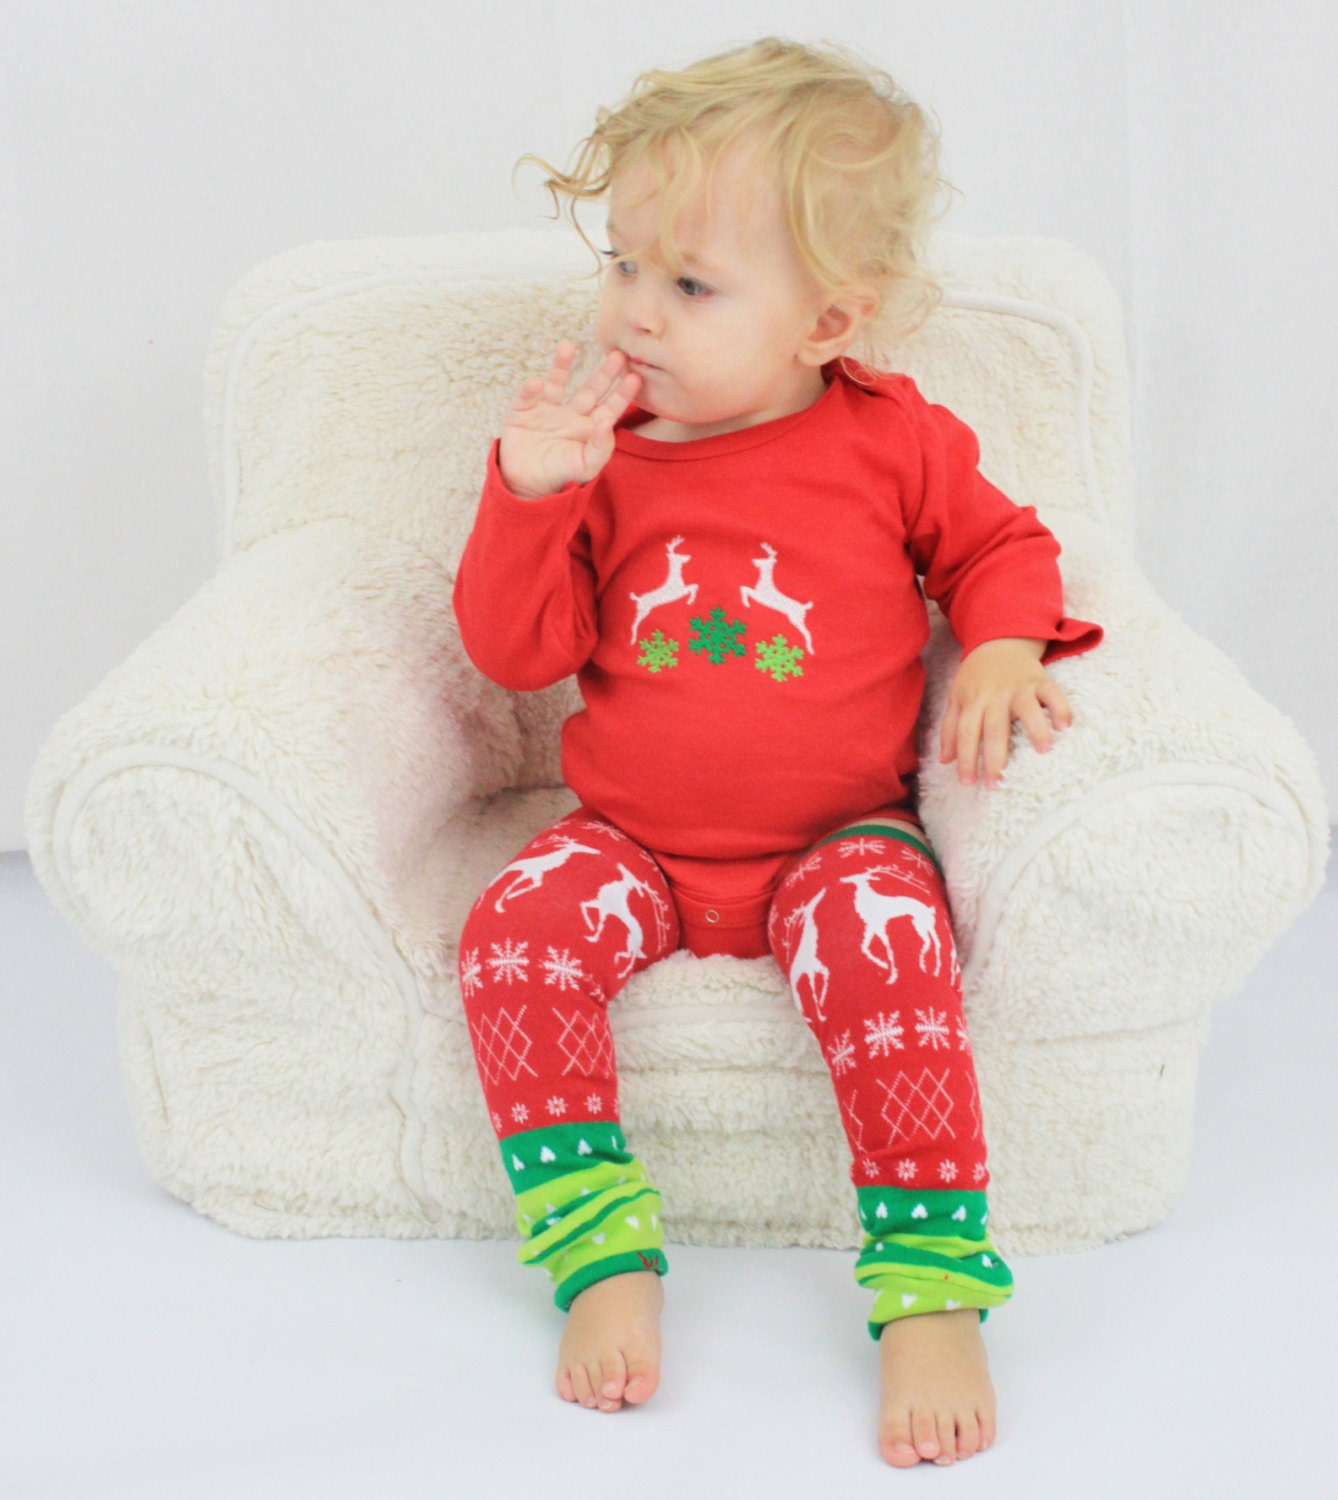 Baby Ugly Christmas Sweater Outfit With Reindeer By GigglePoo